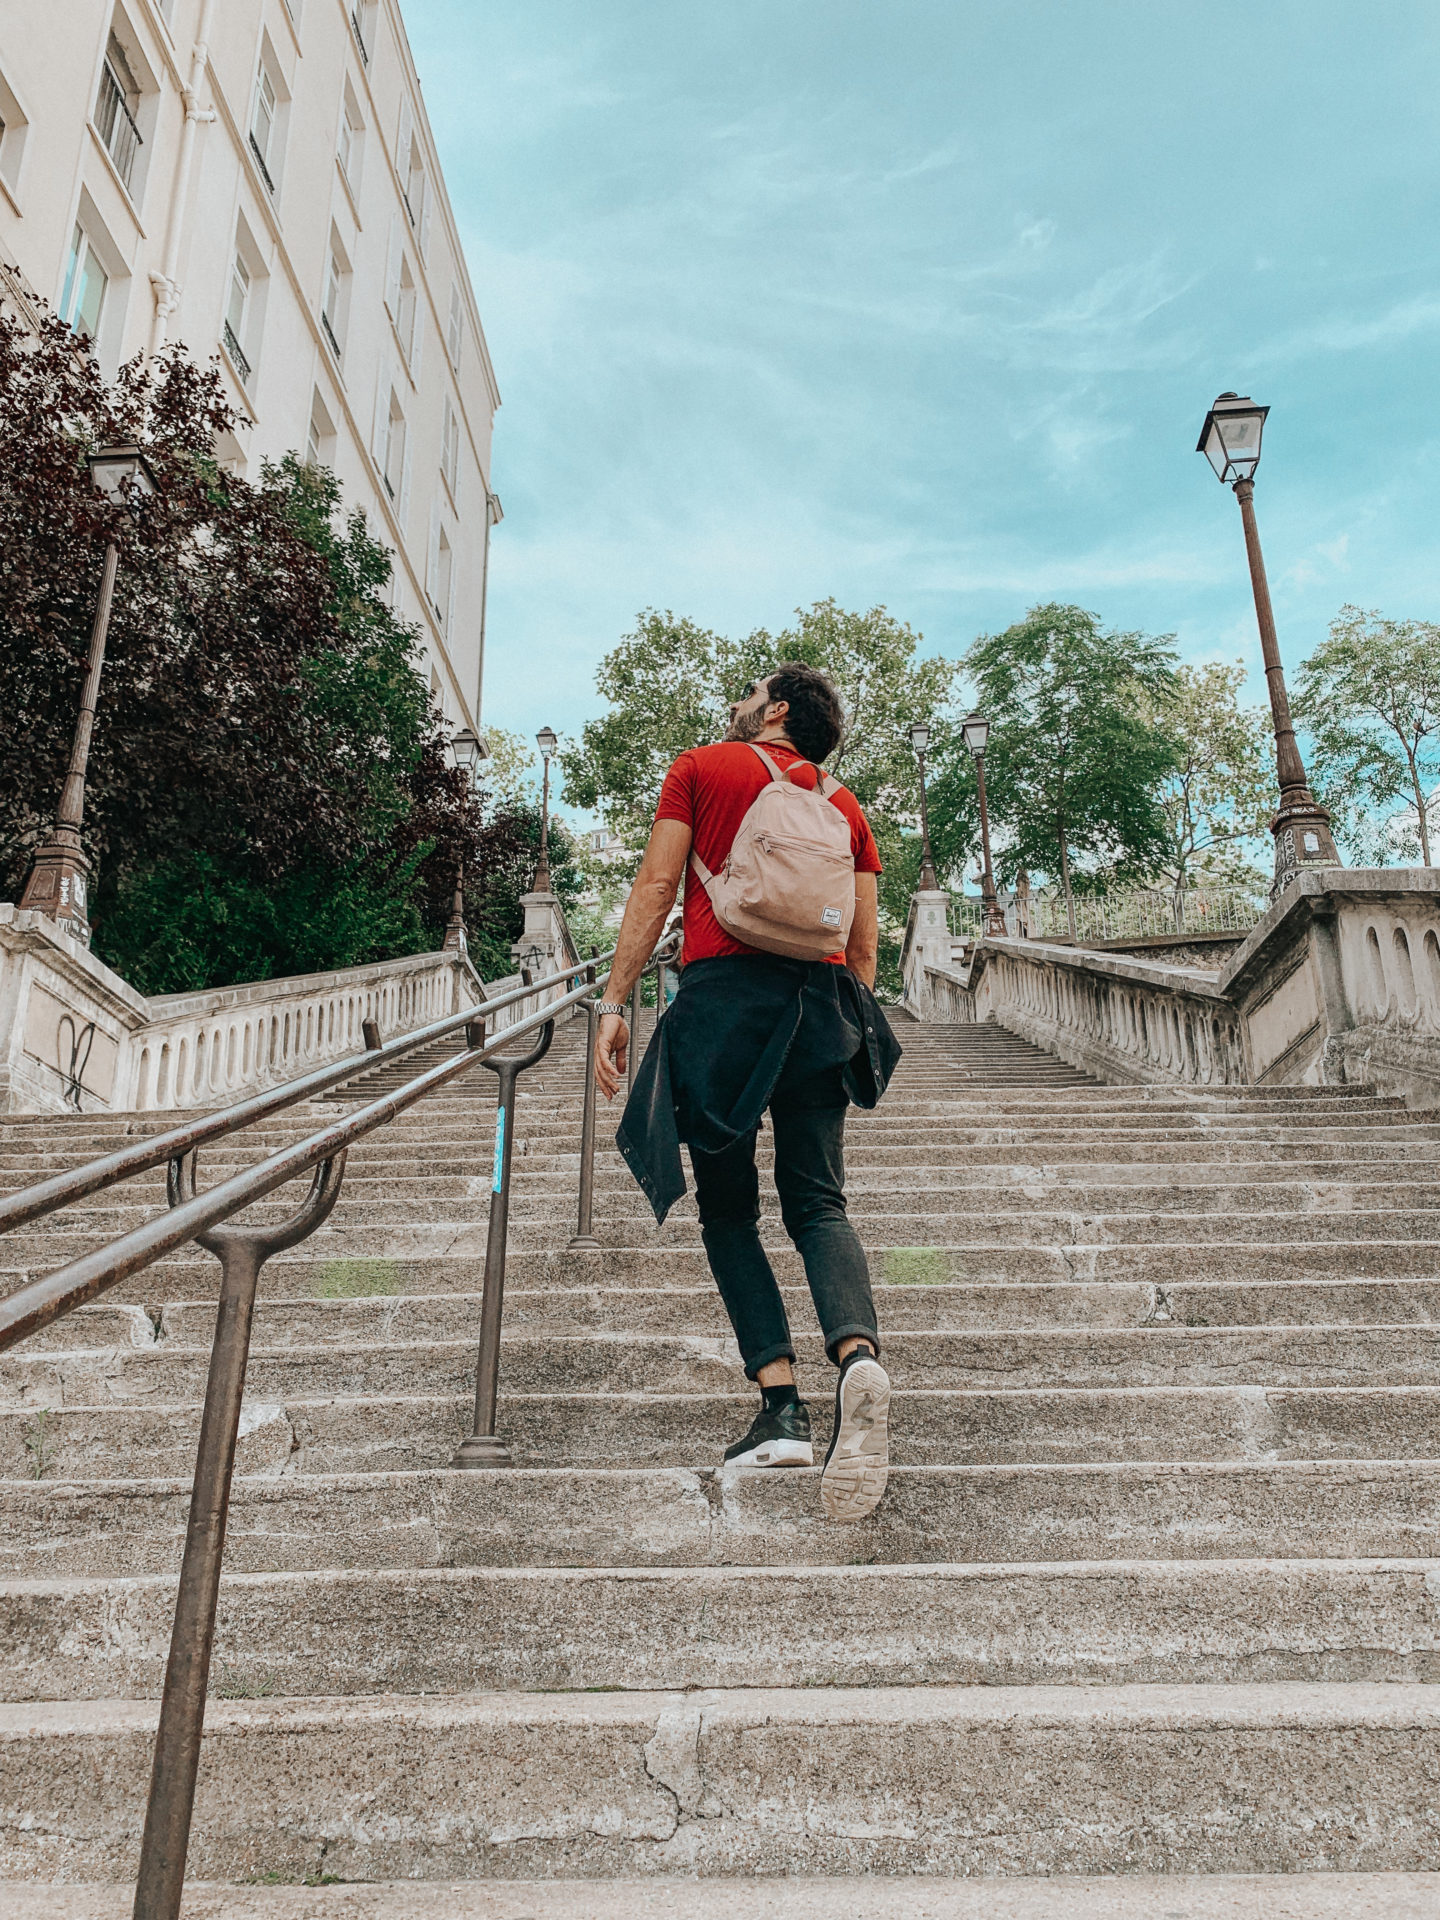 Tourists in Paris on the stairs